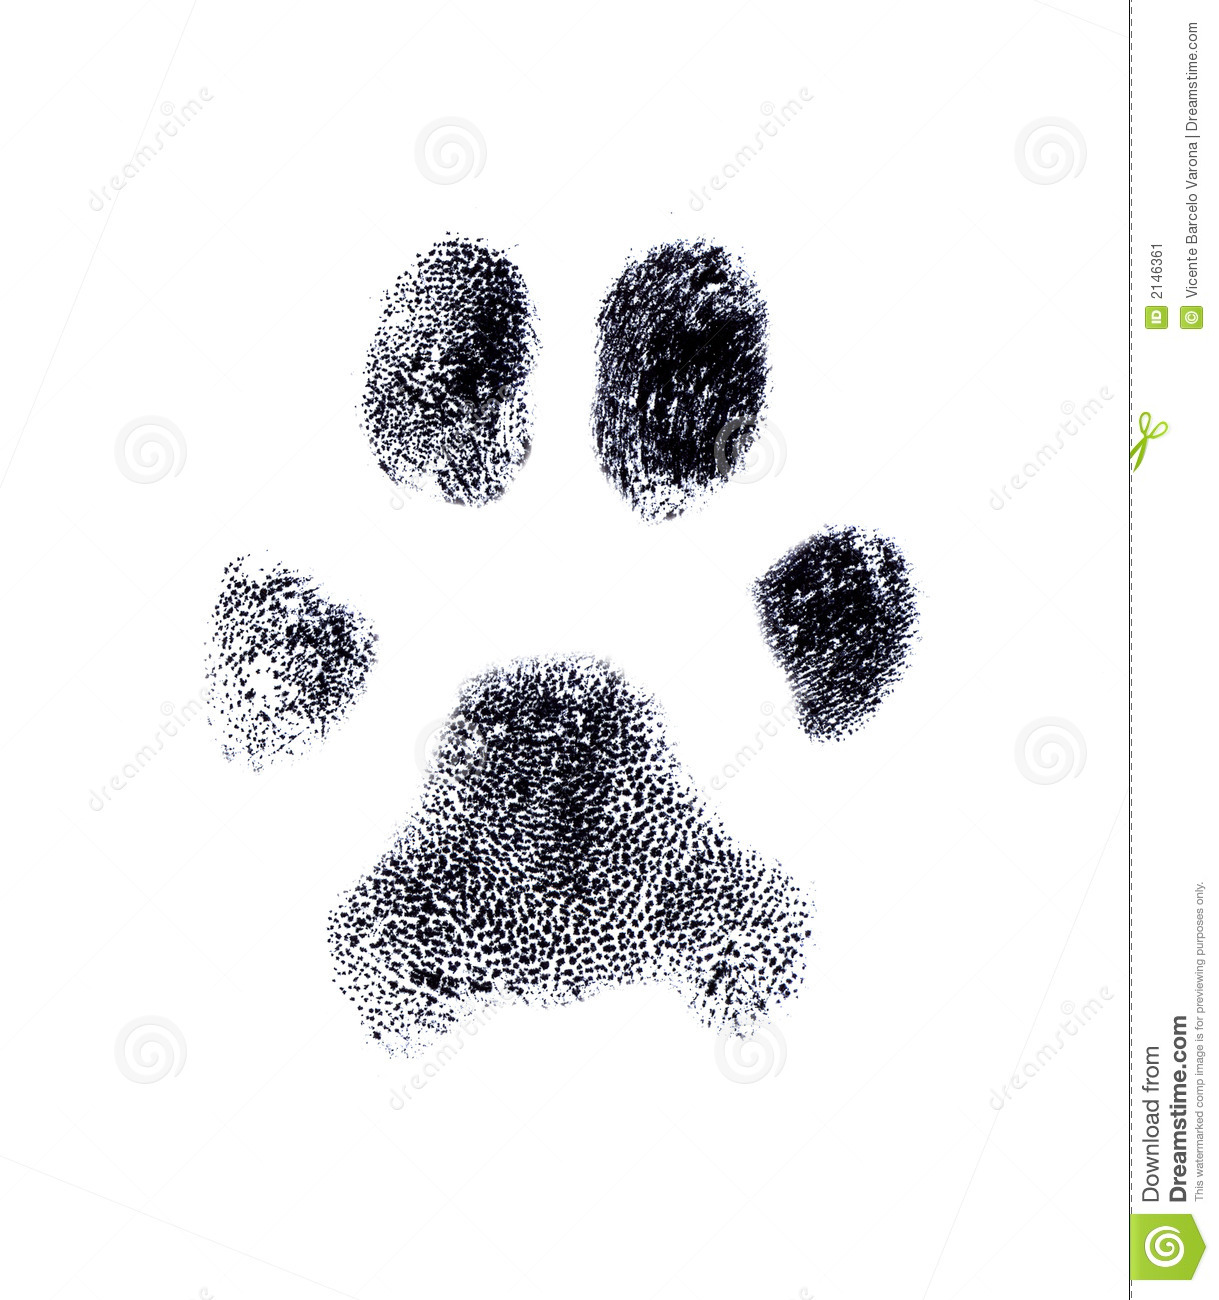 139100 as well 267612402830513014 additionally Stock Image Doberman Bitch Nursing Its Puppies Image9979331 likewise Adults additionally Labradoodle Lion Scare Dog Causes Uproar Mistaken Lion. on animal image labradoodle